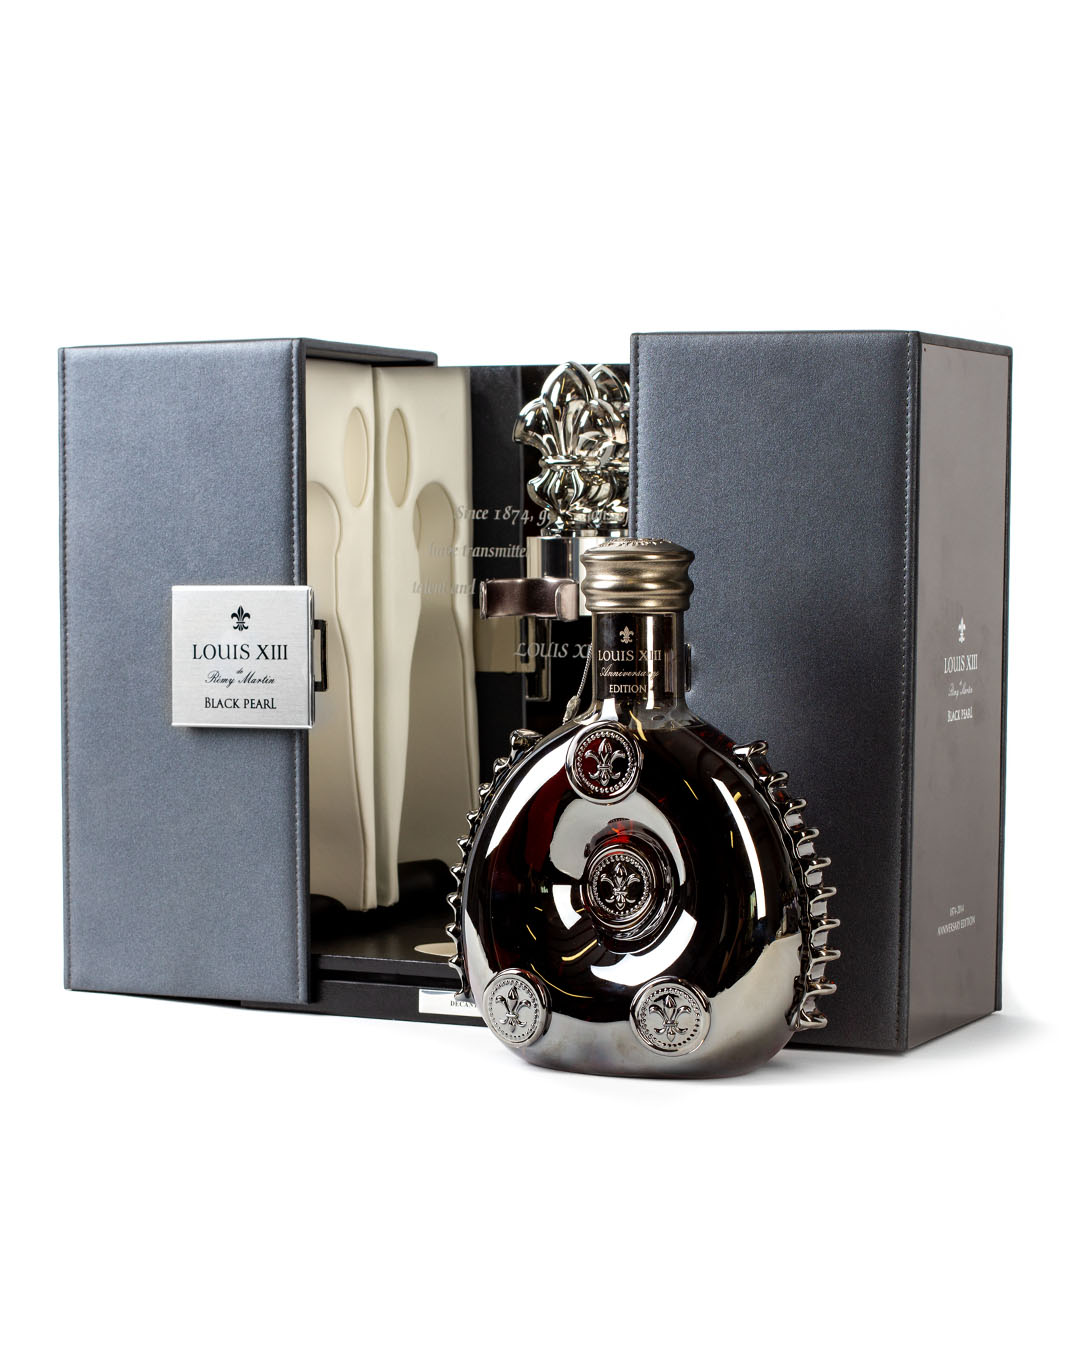 Remy Martin Louis XIII Champagne Cognac 100 year old